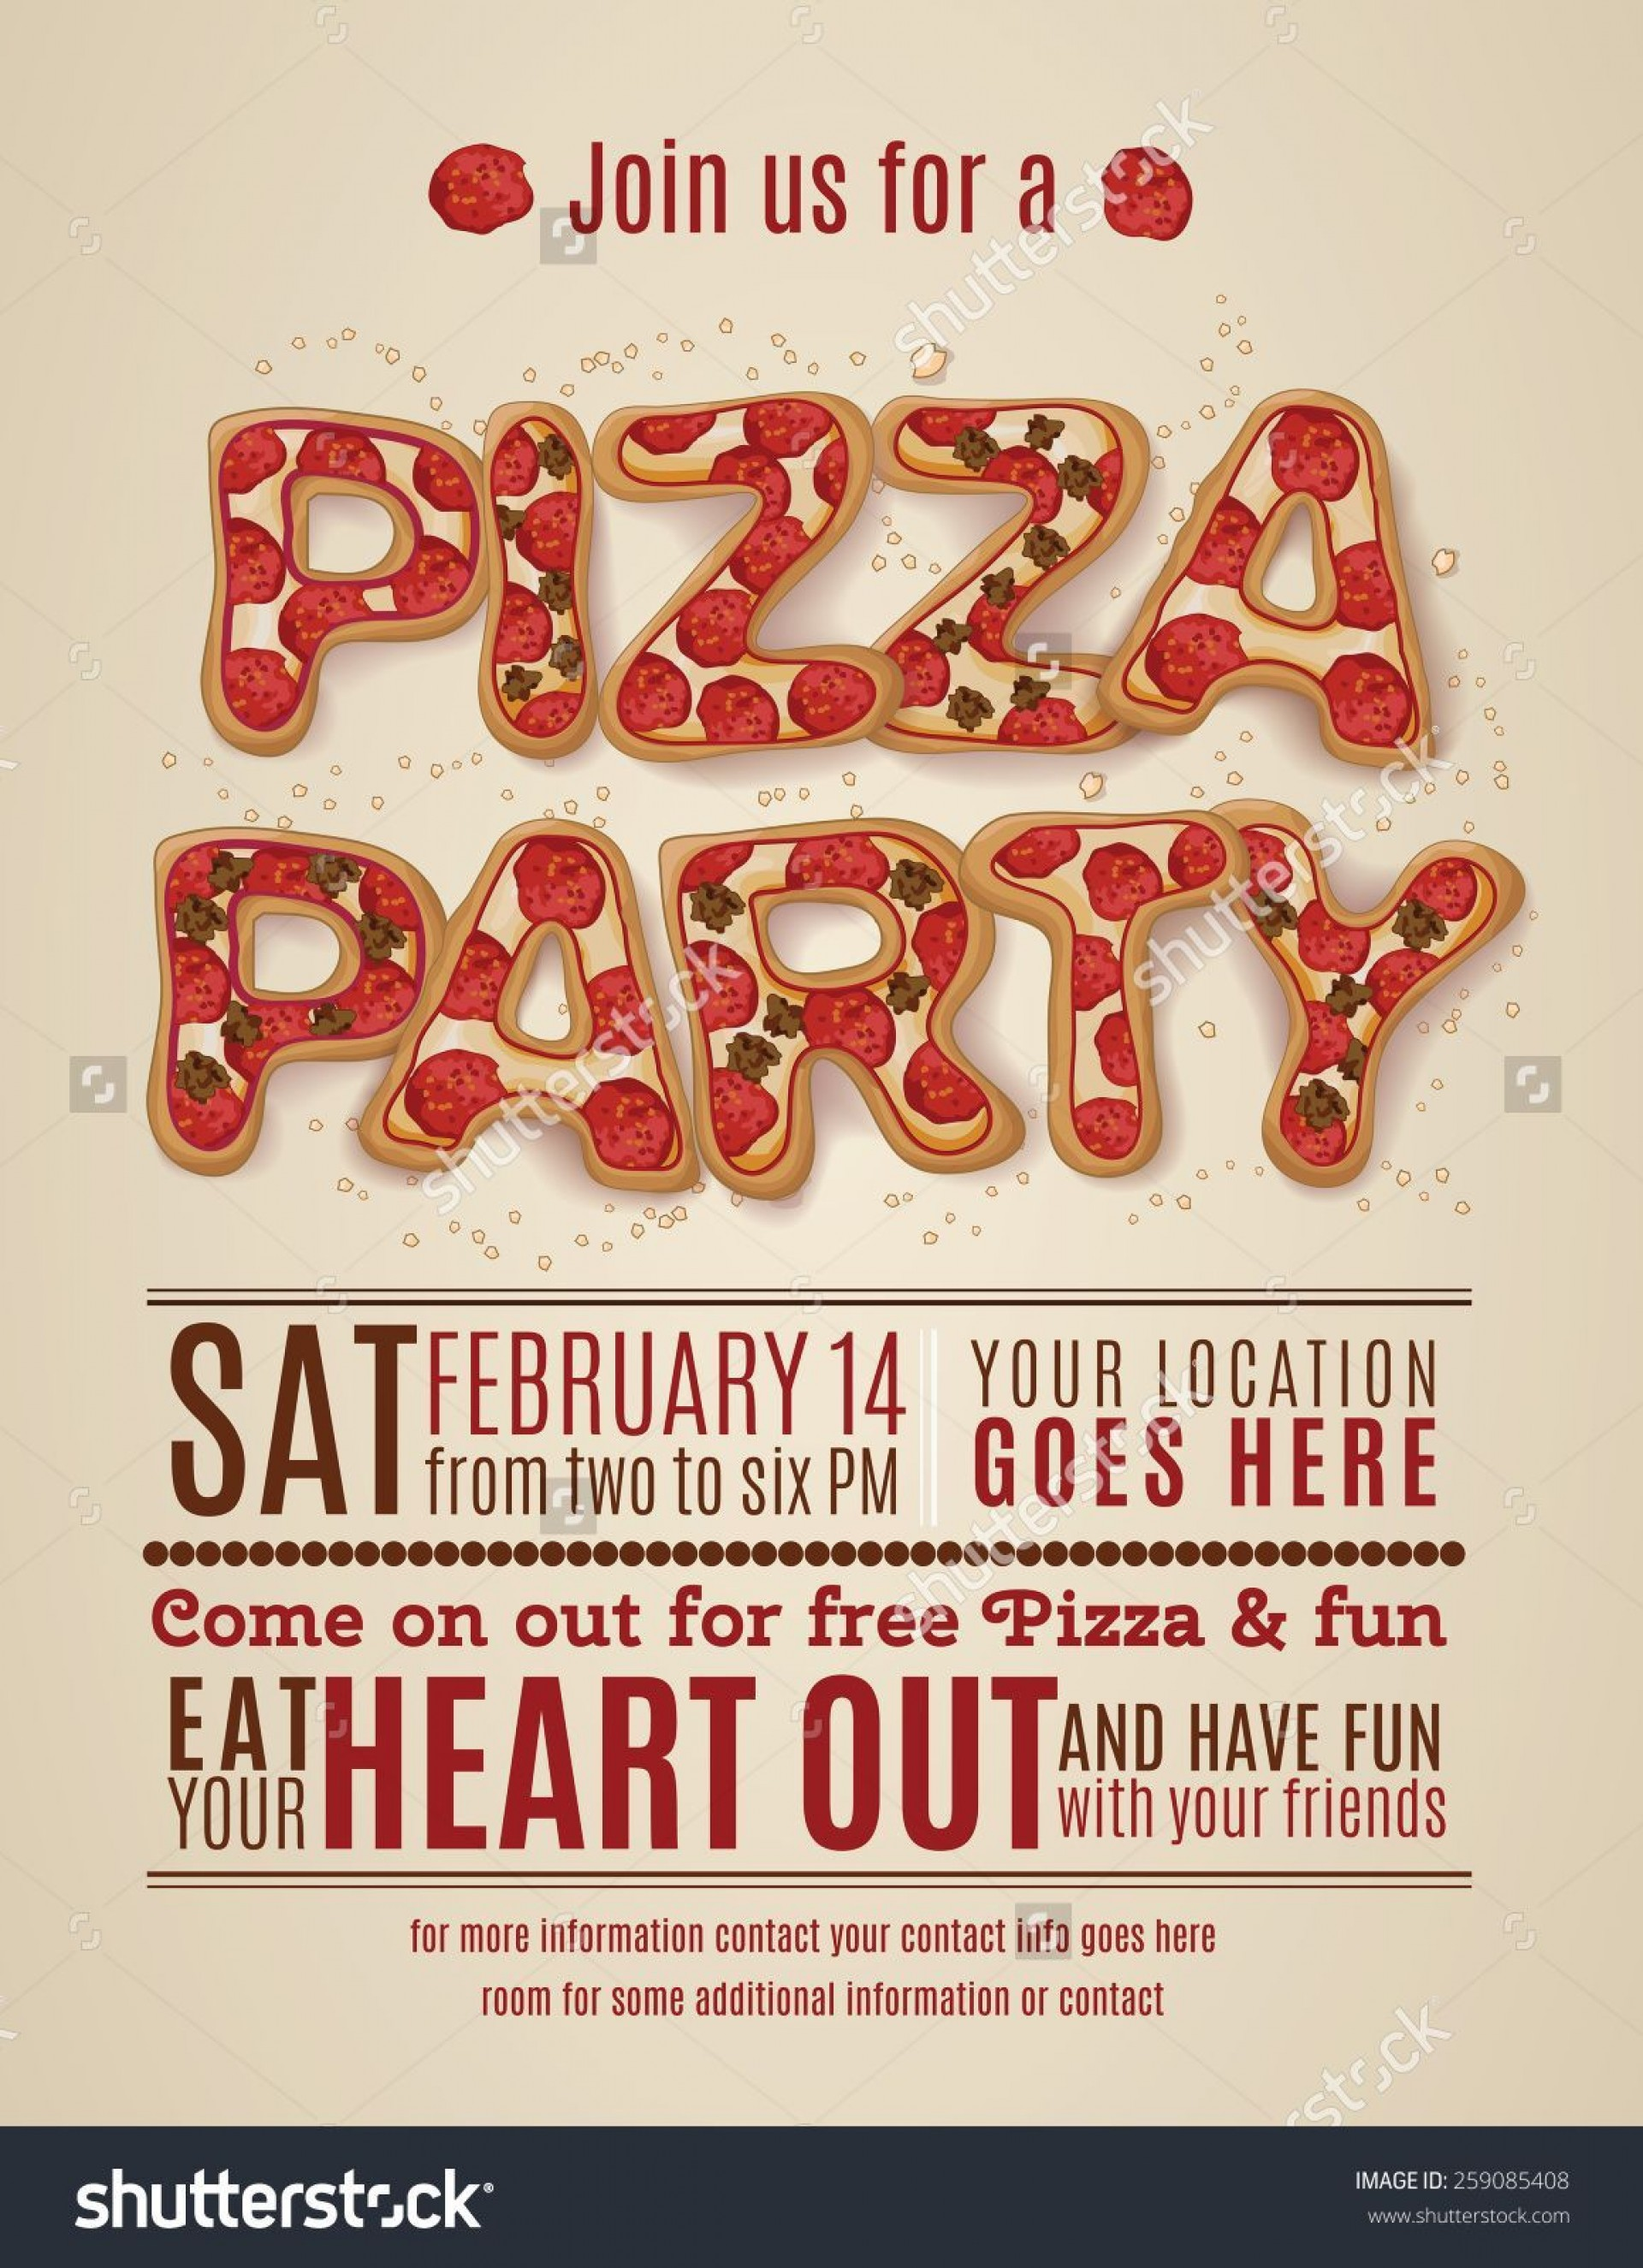 001 Imposing Pizza Party Invitation Template Free High Definition  Printable1920